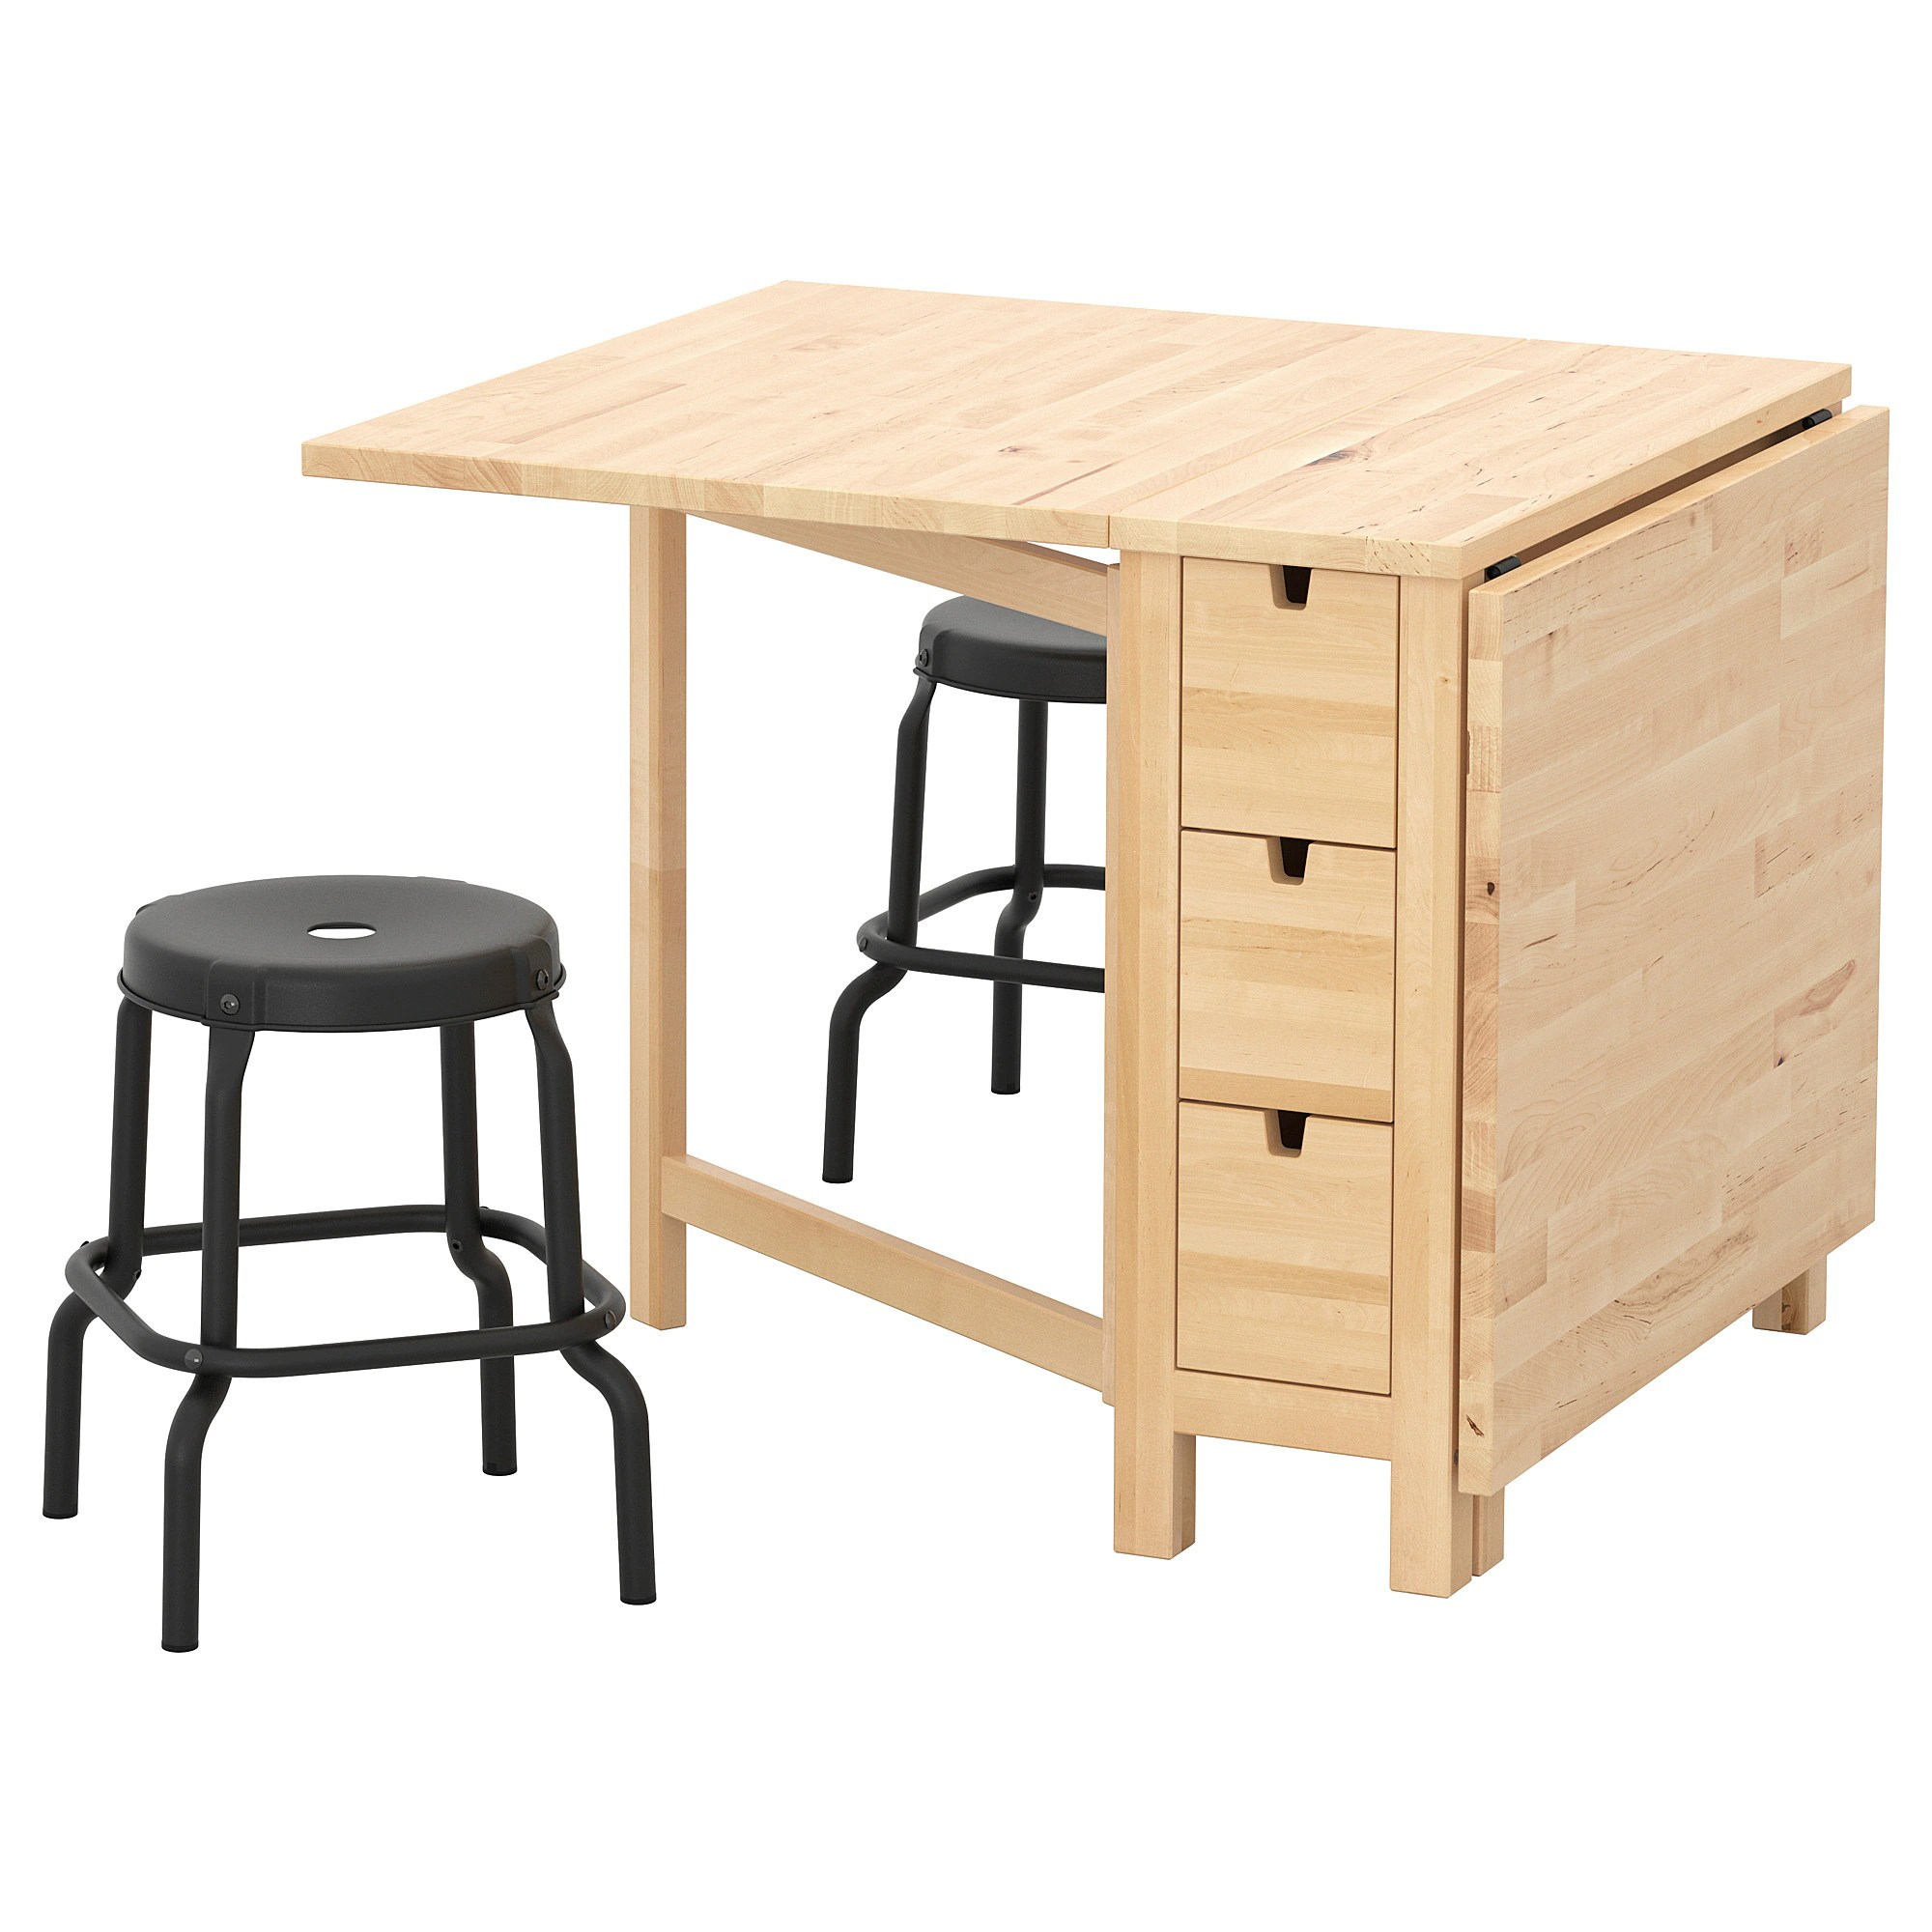 Mesa Norden Ikea Norden RÅskog Table And 2 Stools Birch Black